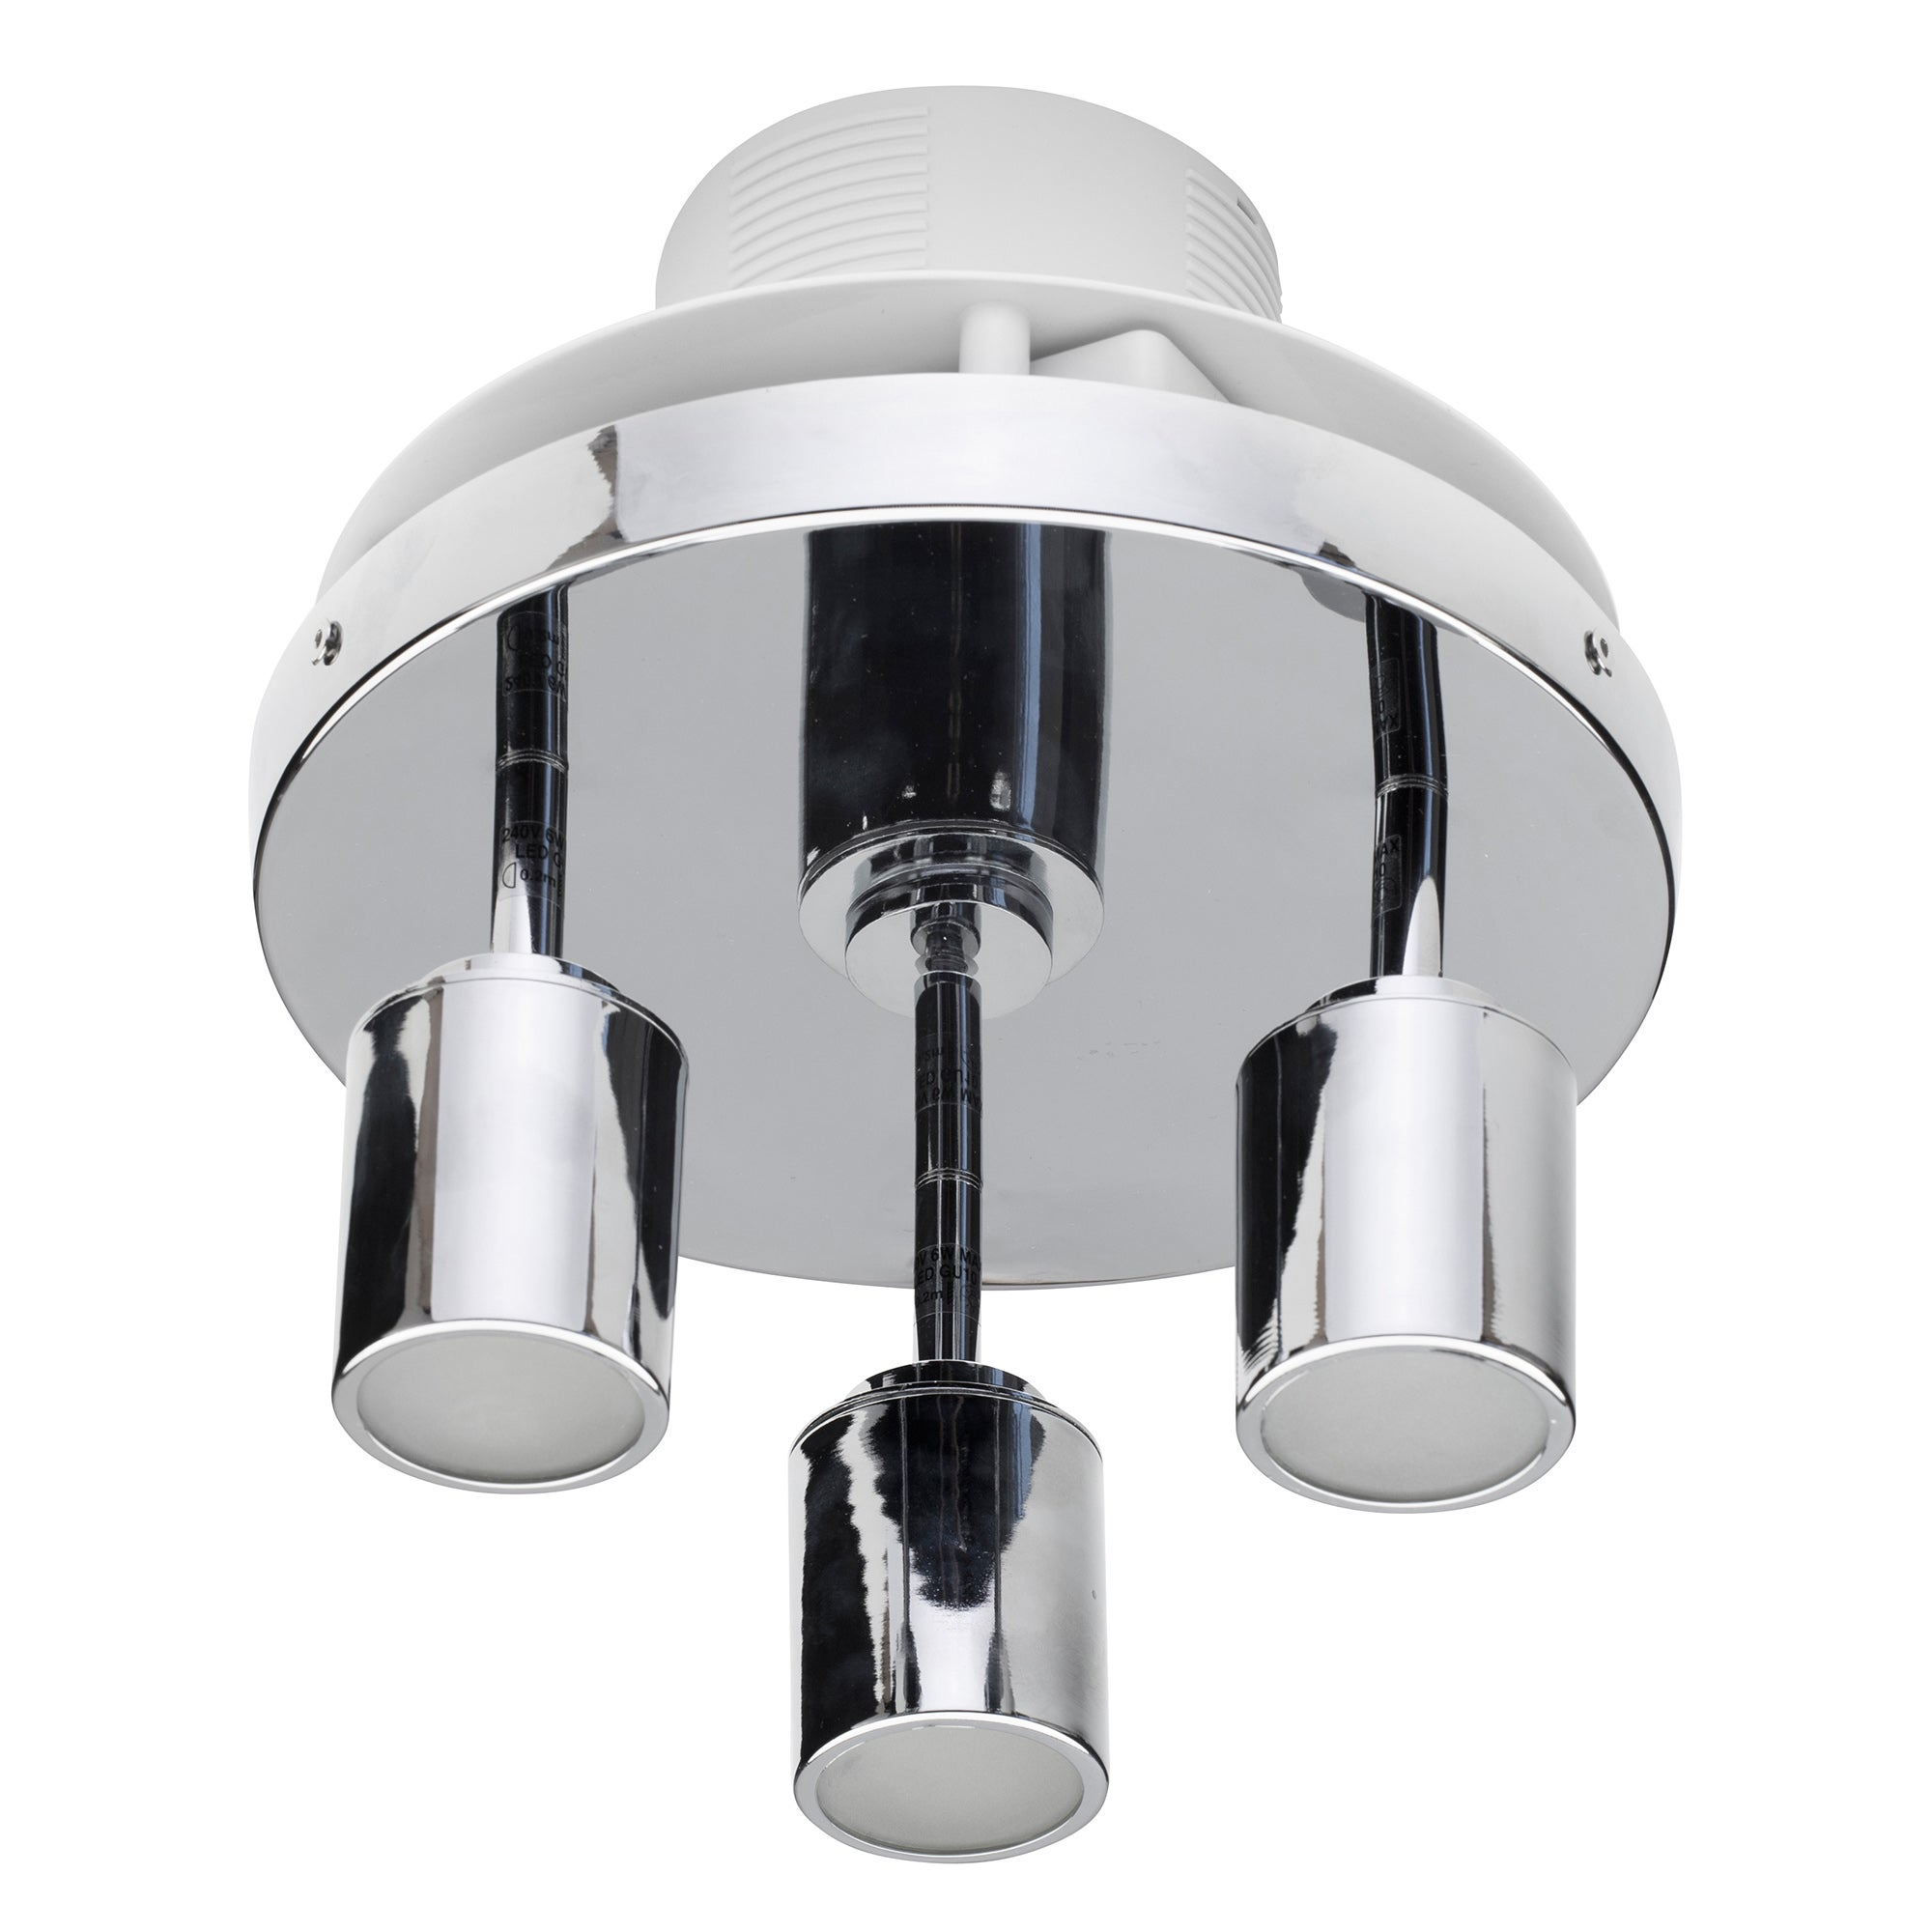 Image of Otano 3 Spot Light Ceiling Fitting and Extractor Fan Chrome